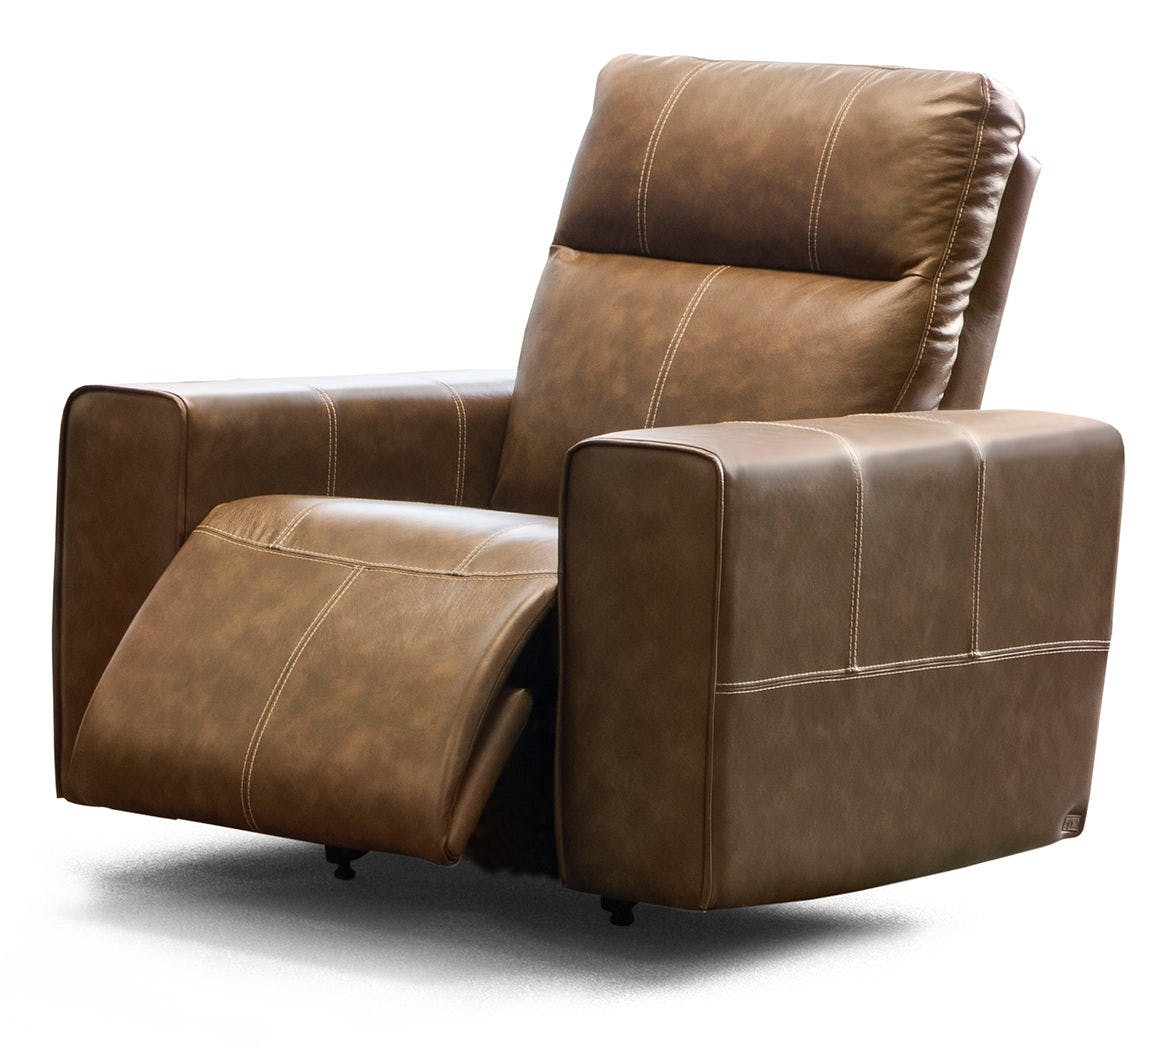 Elran Living Room Rocker Recliner - Power ER40812-OP-02 - Penny